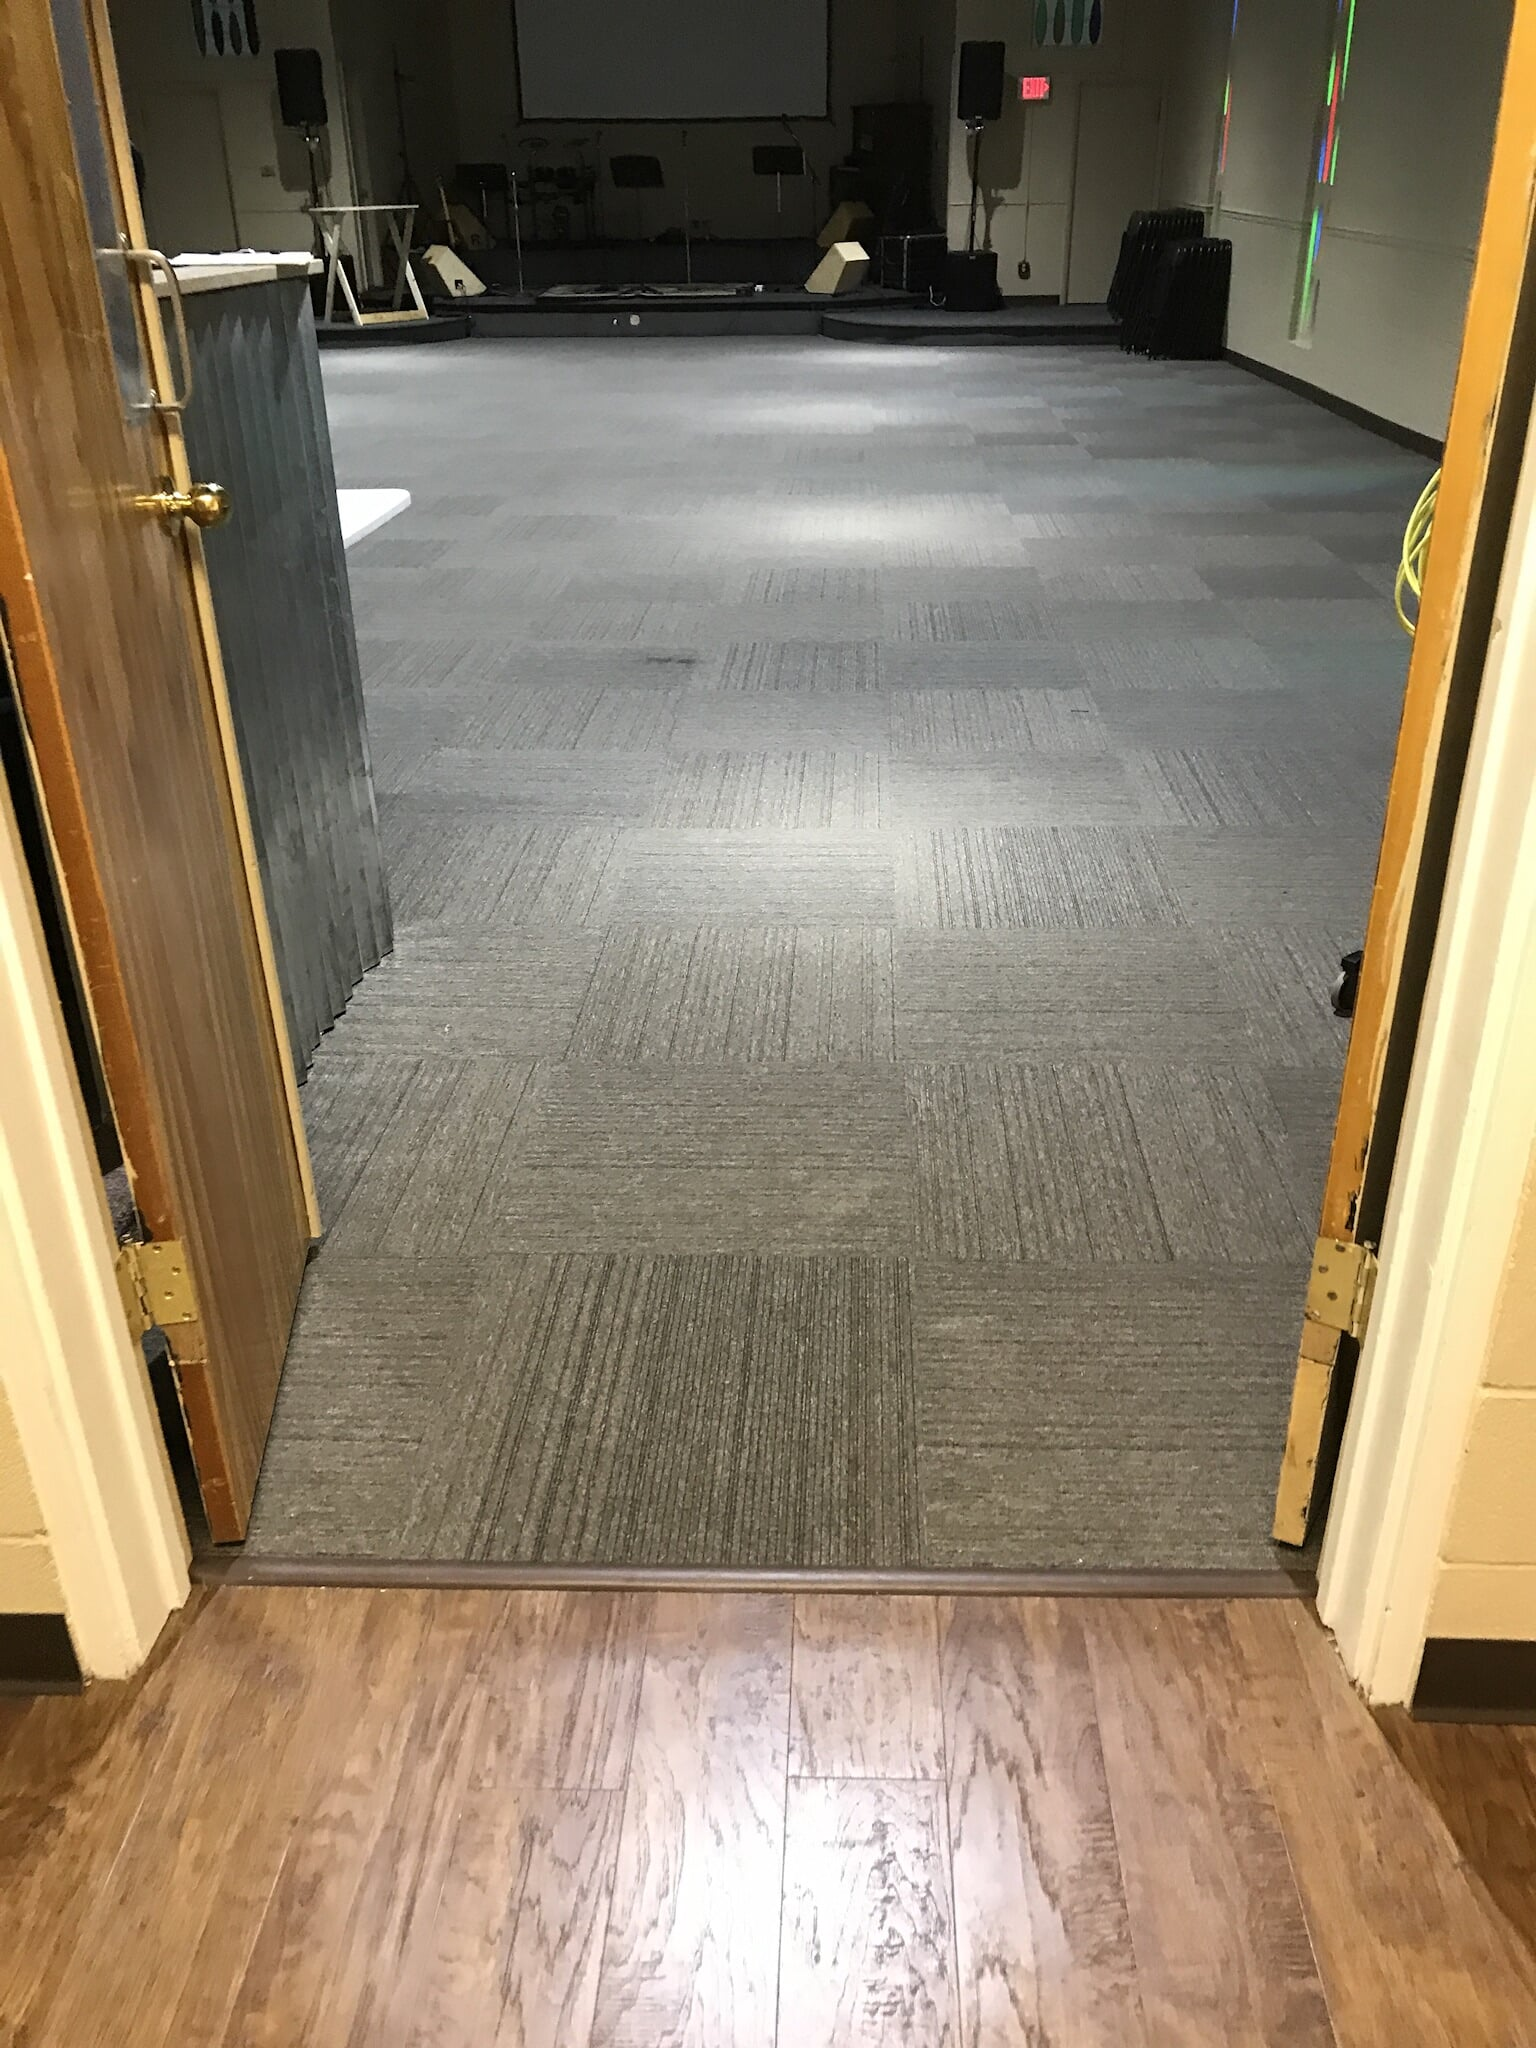 Carpet tiles from Roop's Carpet in Cabot, AR